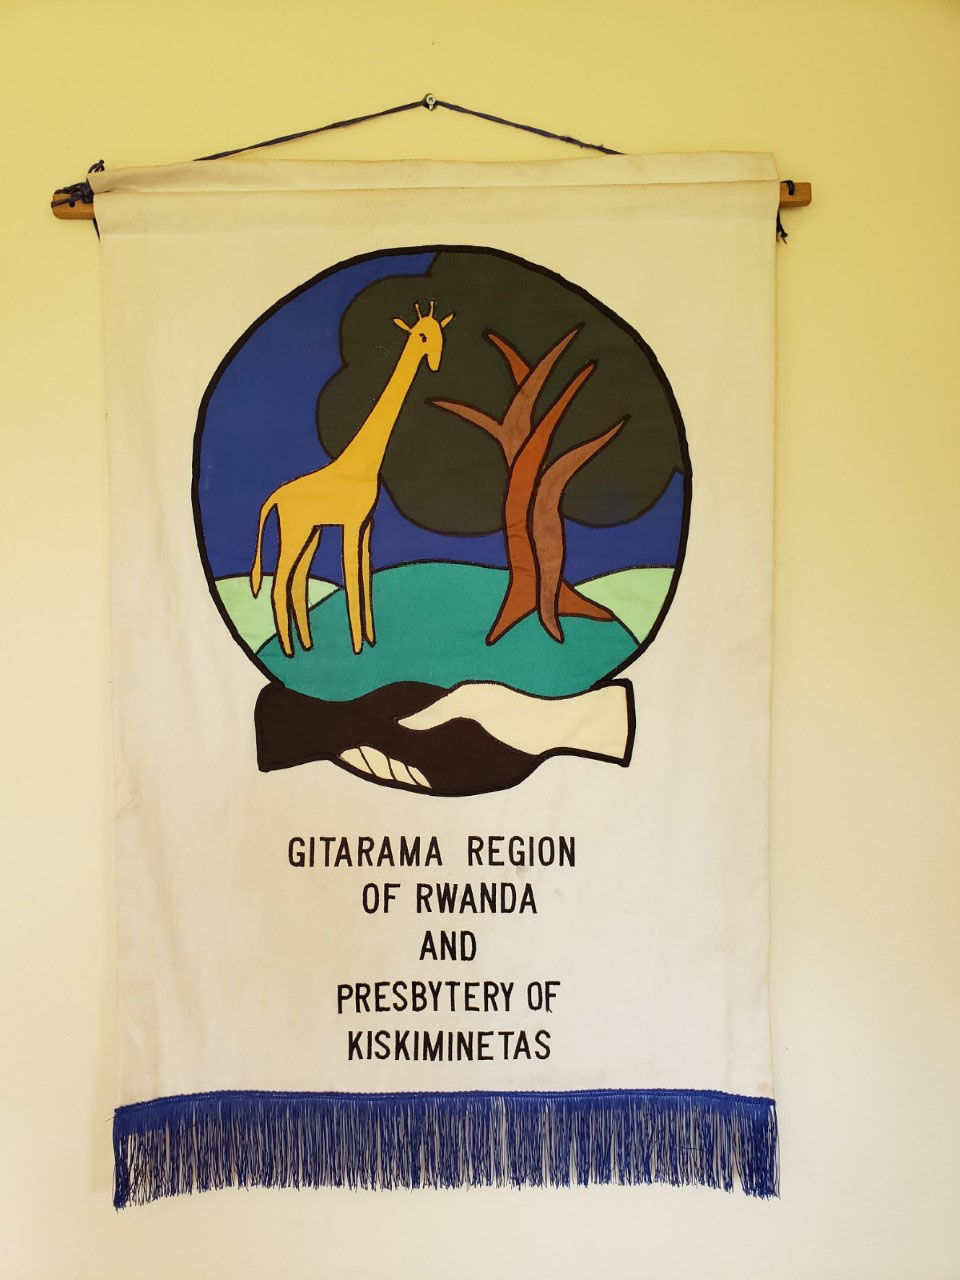 Banner hanging in the president's office at the Gitarama Presbytery of their partnership with the Presbytery of Kiskiminetas.